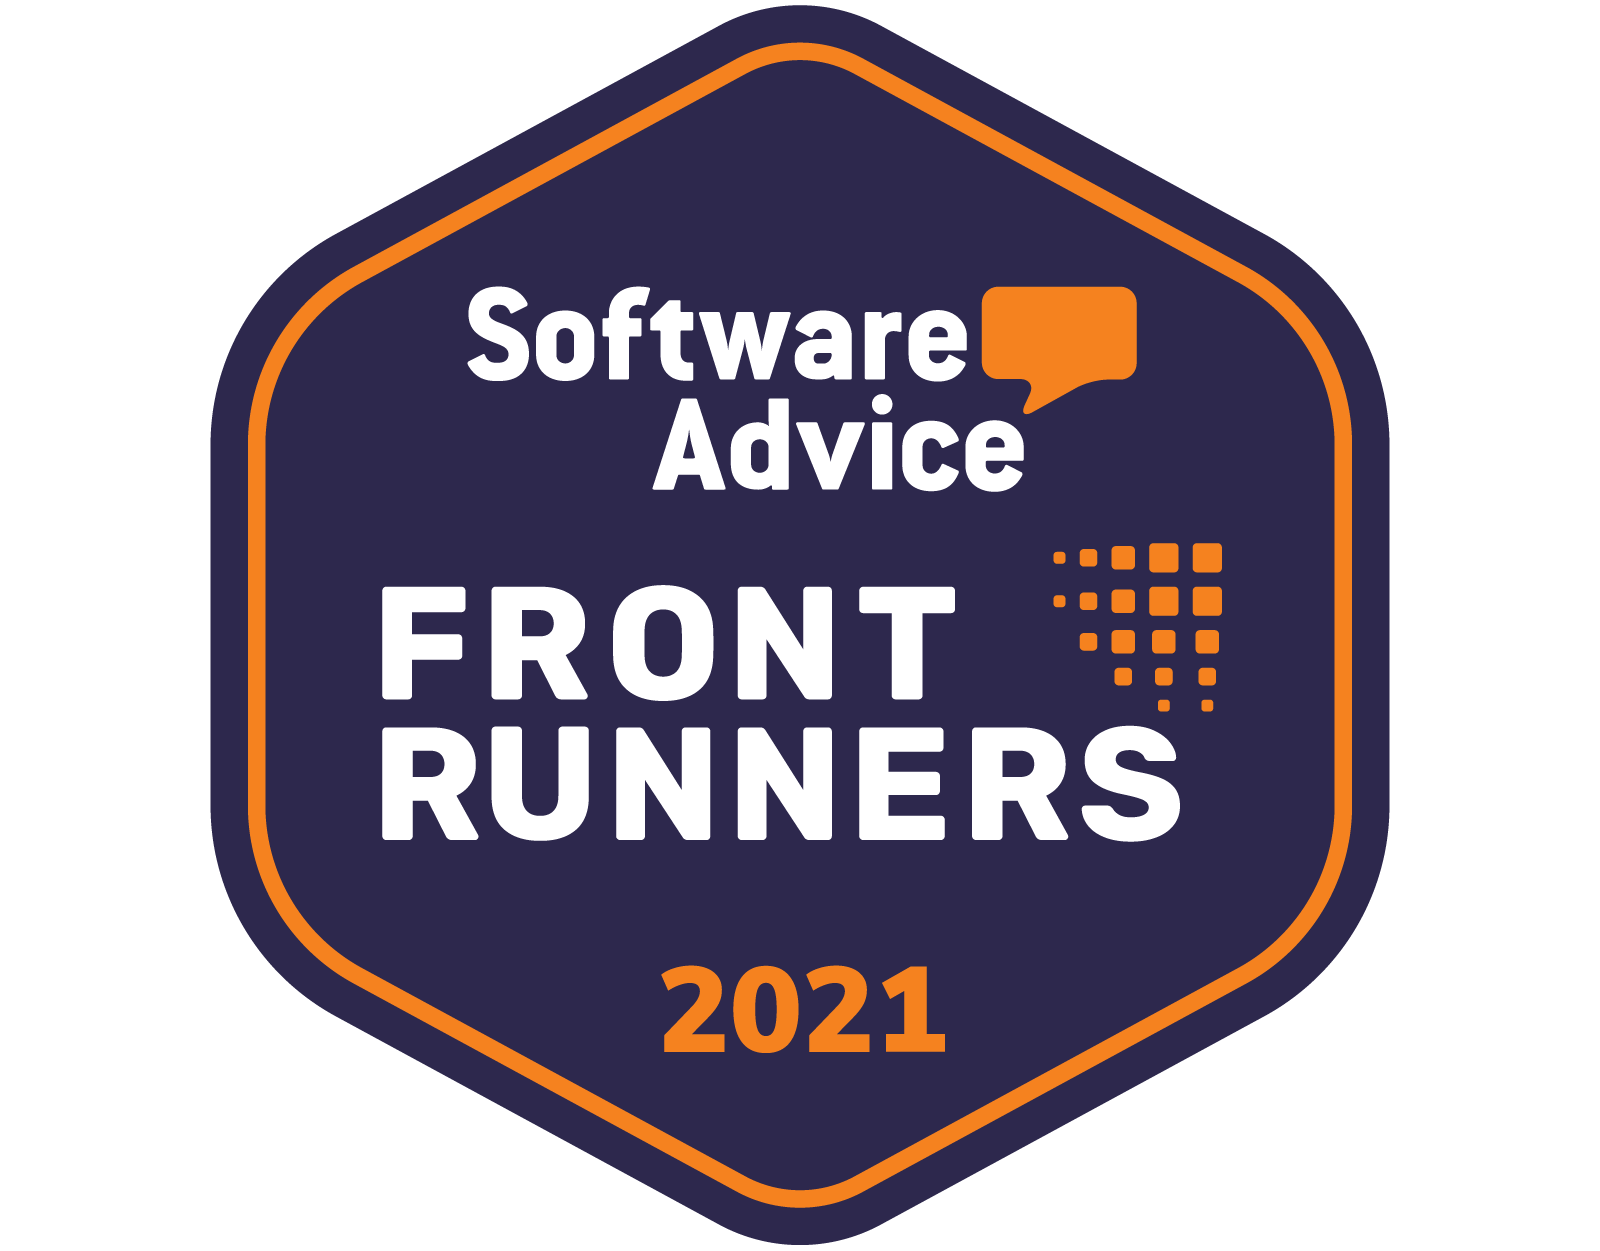 Software Advice Frontrunners for Task Management Jan-21